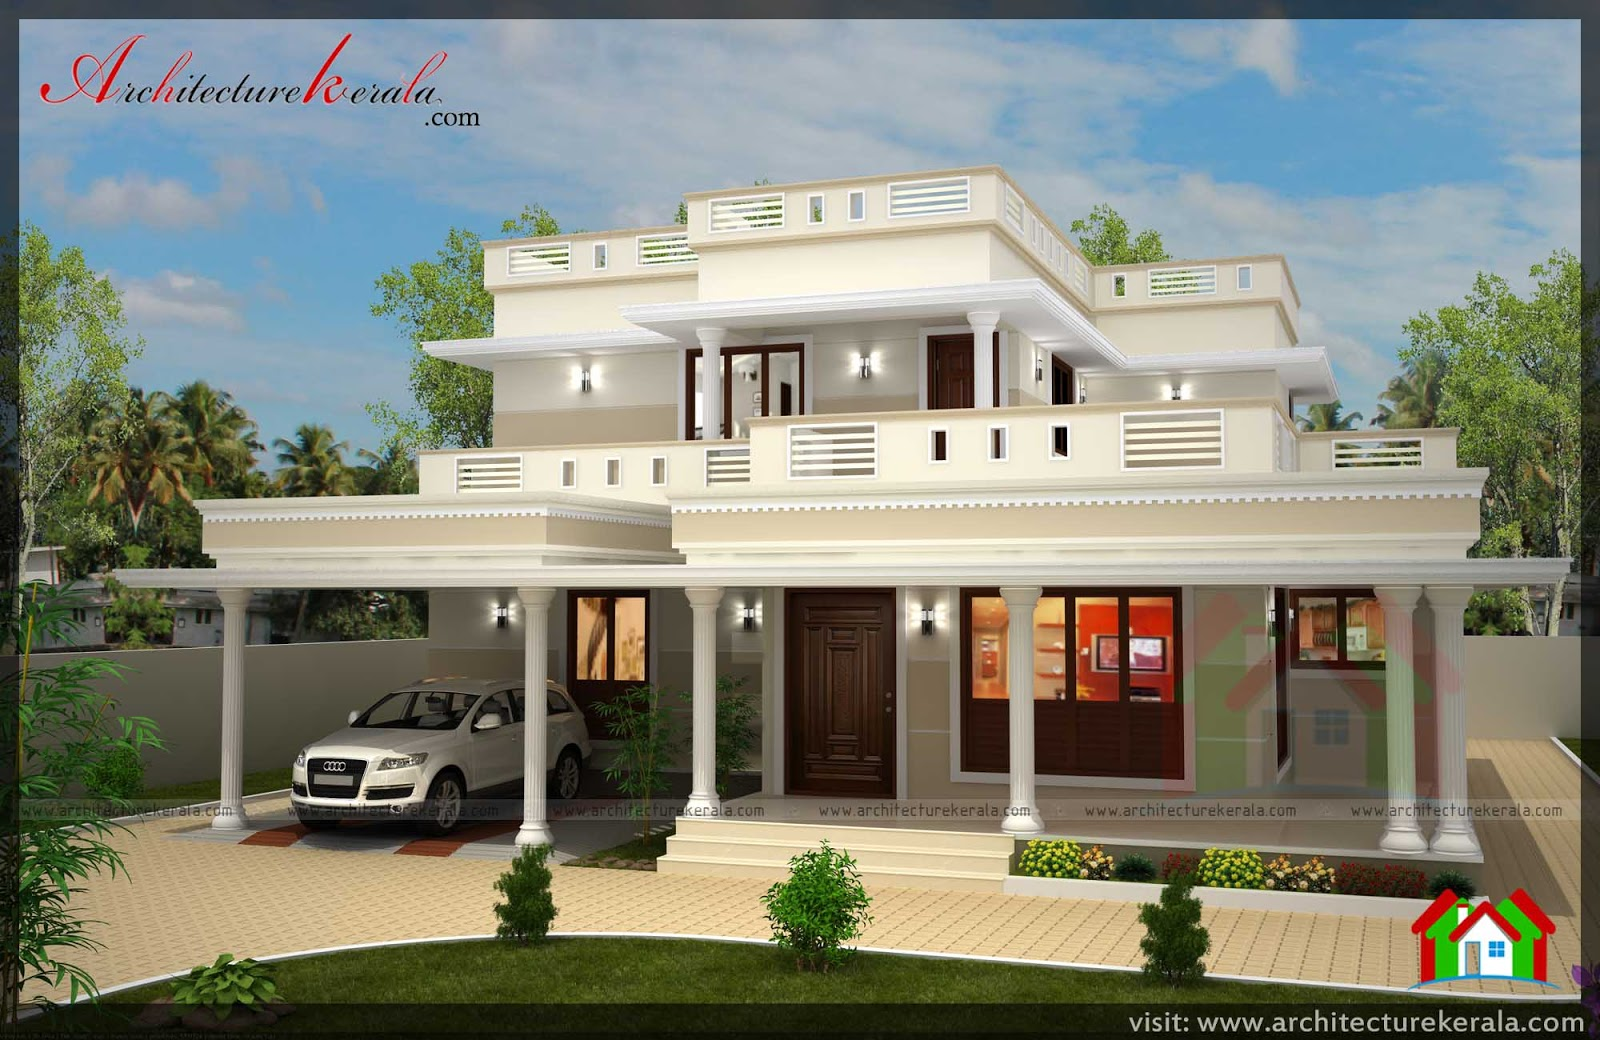 Stunning 4 bedroom kerala home design with pooja room free plan and elevation free kerala home - House plan design rooms ...